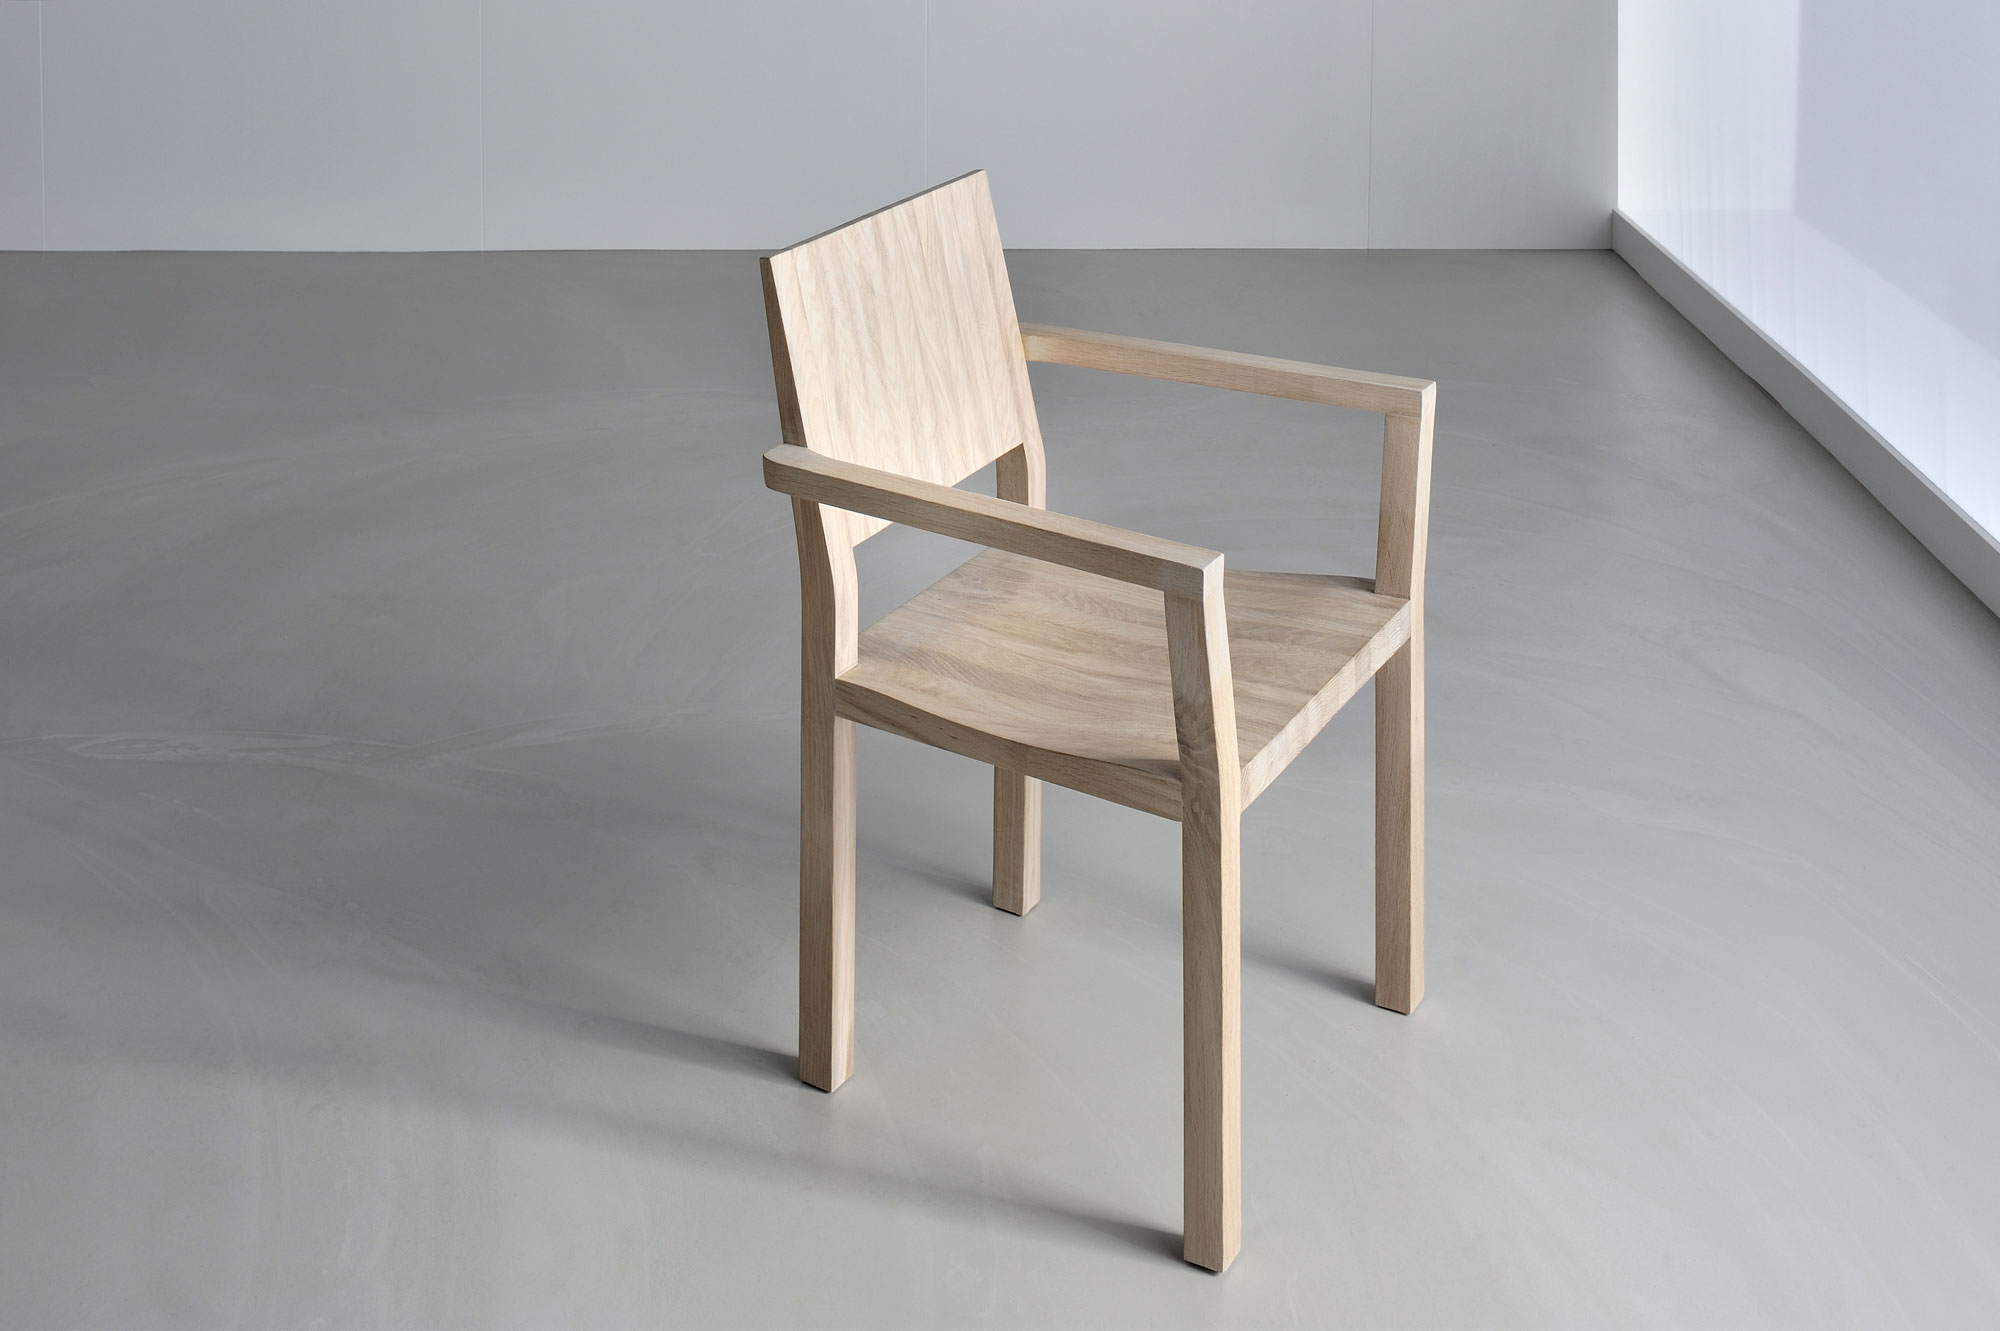 Solid Wood Armchair TAU-A 3343 custom made in solid wood by vitamin design